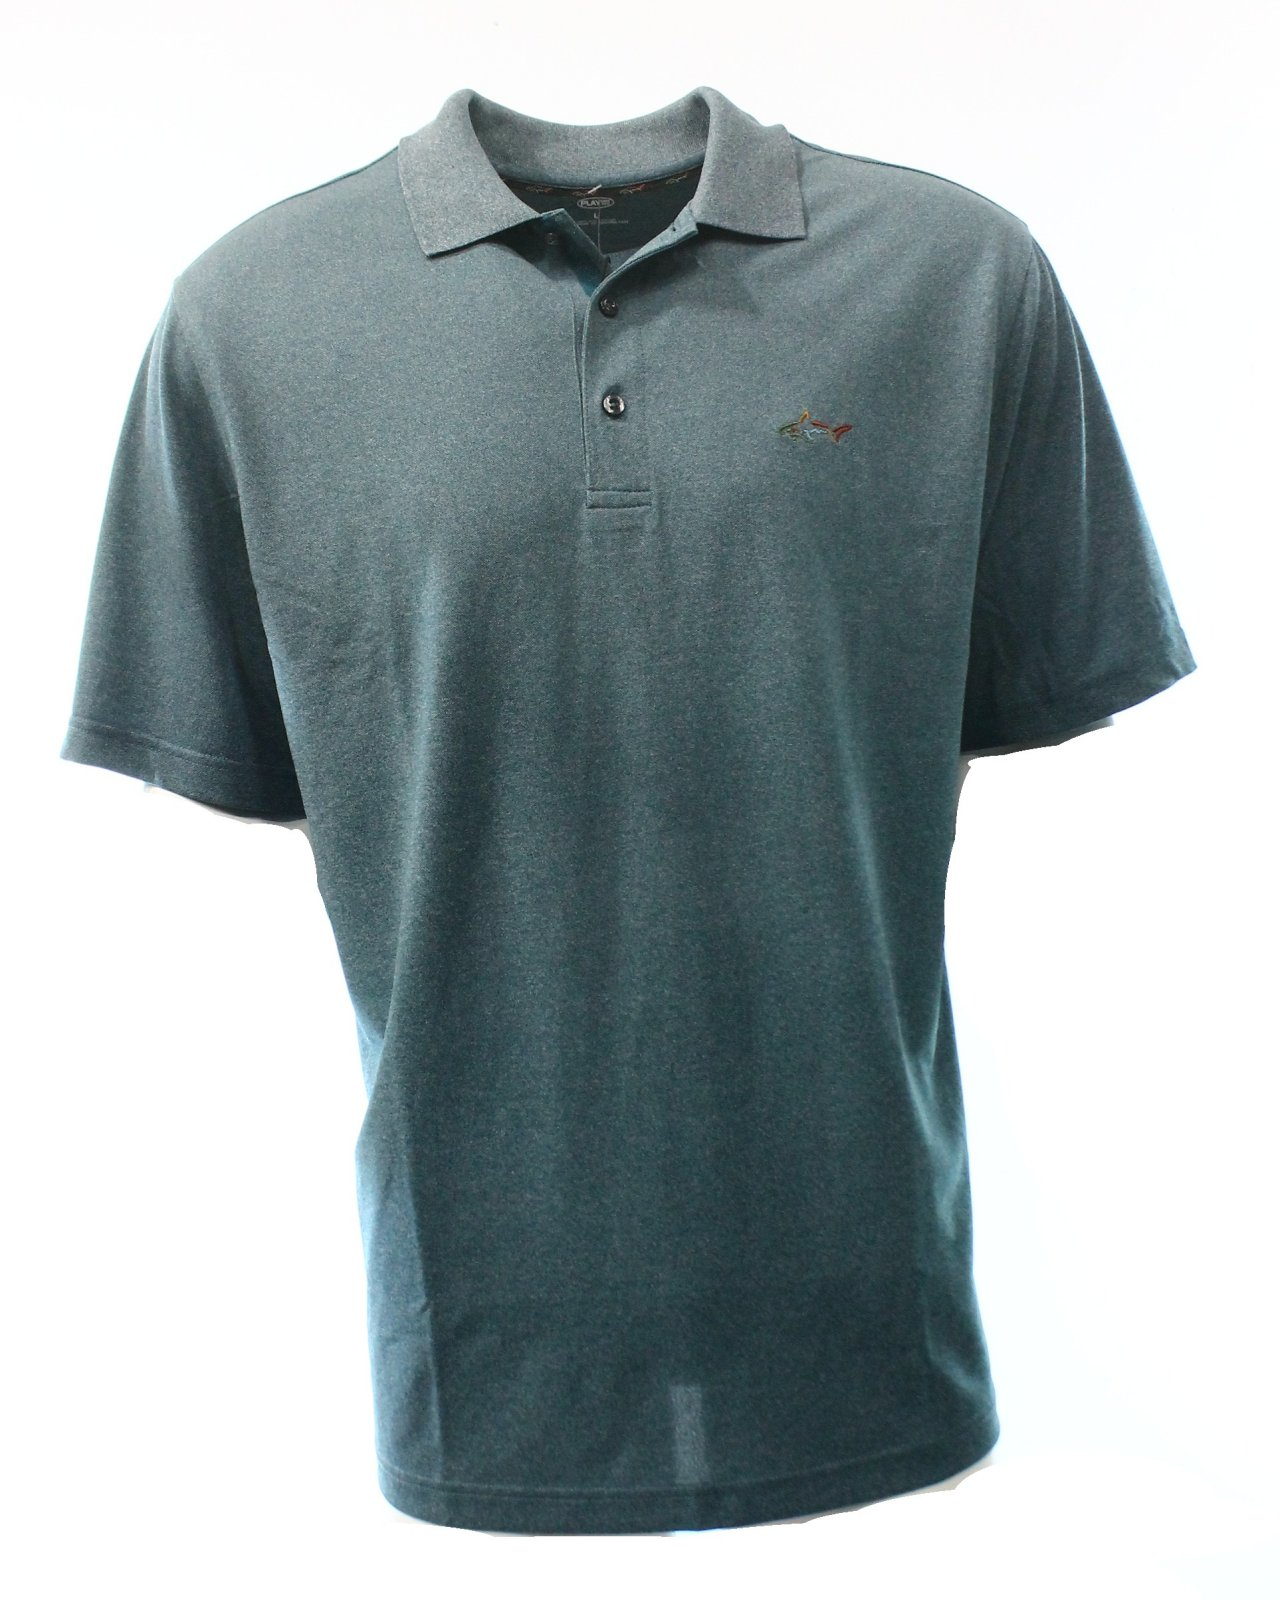 Greg norman new teal bayou heather blue mens us size small for Mens teal polo shirt